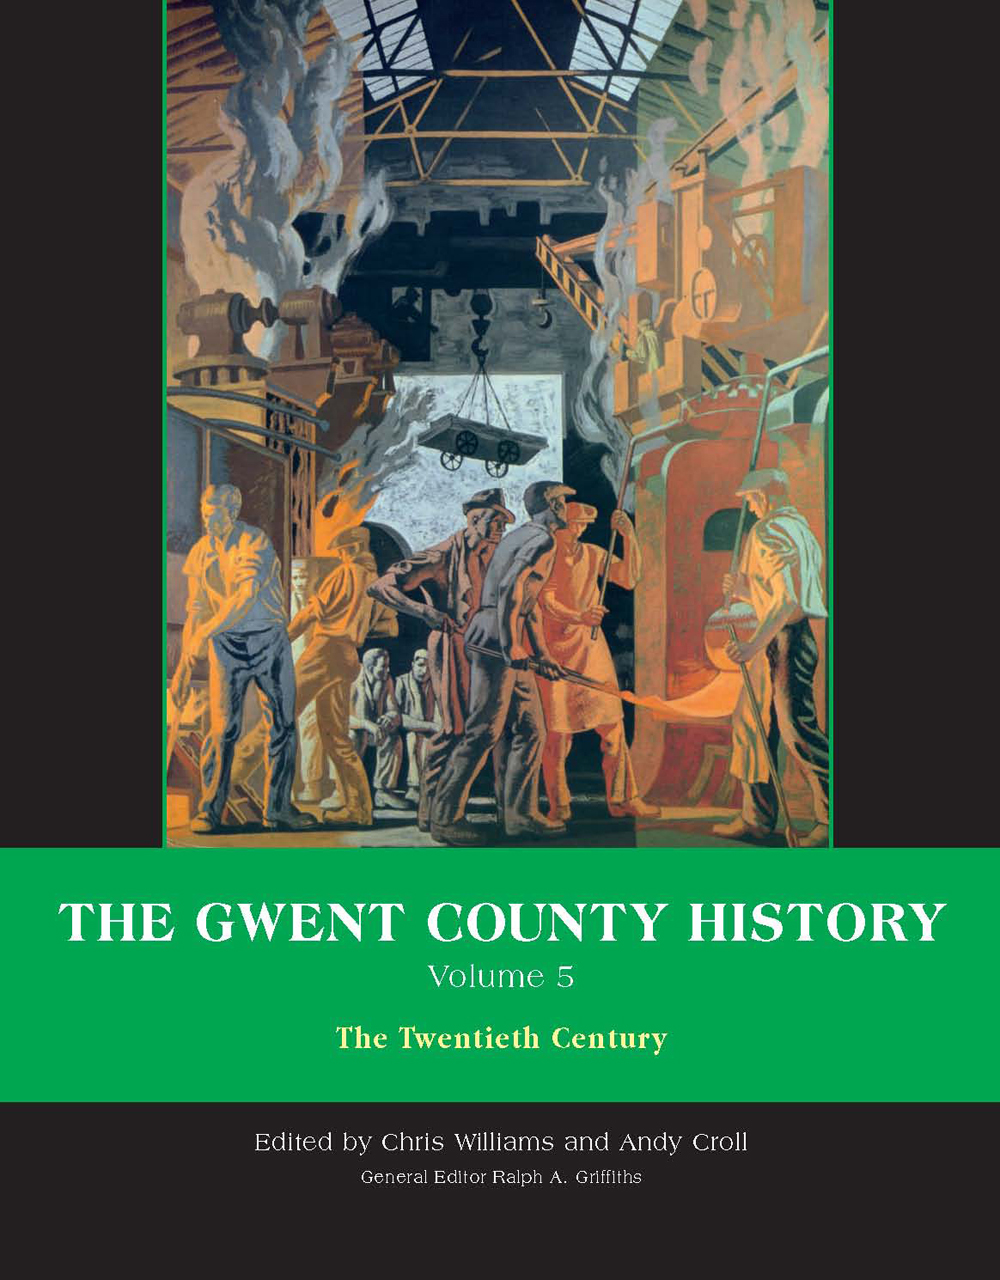 The Gwent County History, Volume 5: The Twentieth Century